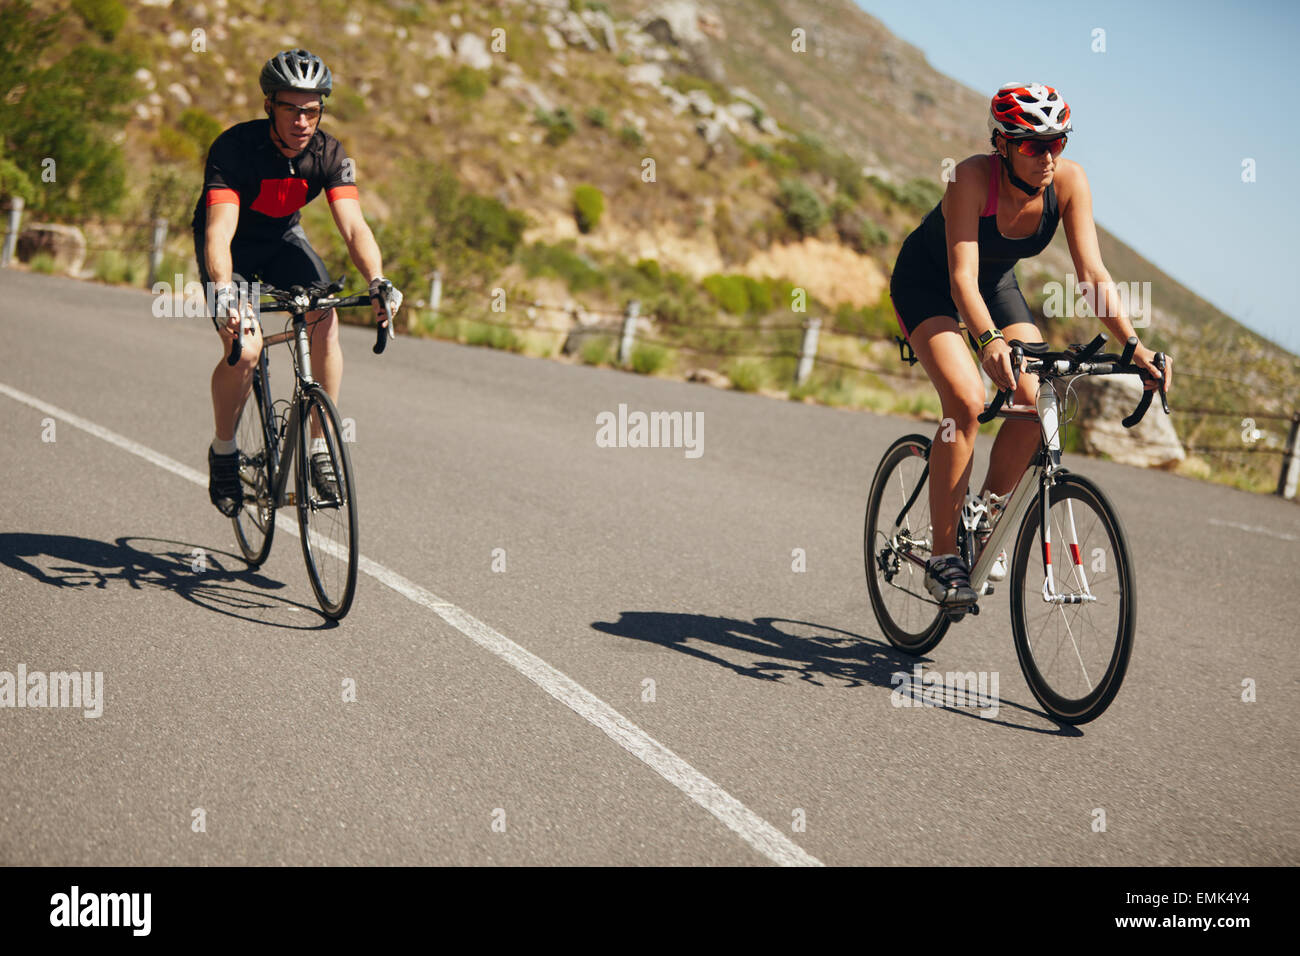 Woman competing in the cycling leg of a triathlon with male competitor. Triathletes riding bicycle on open road. - Stock Image